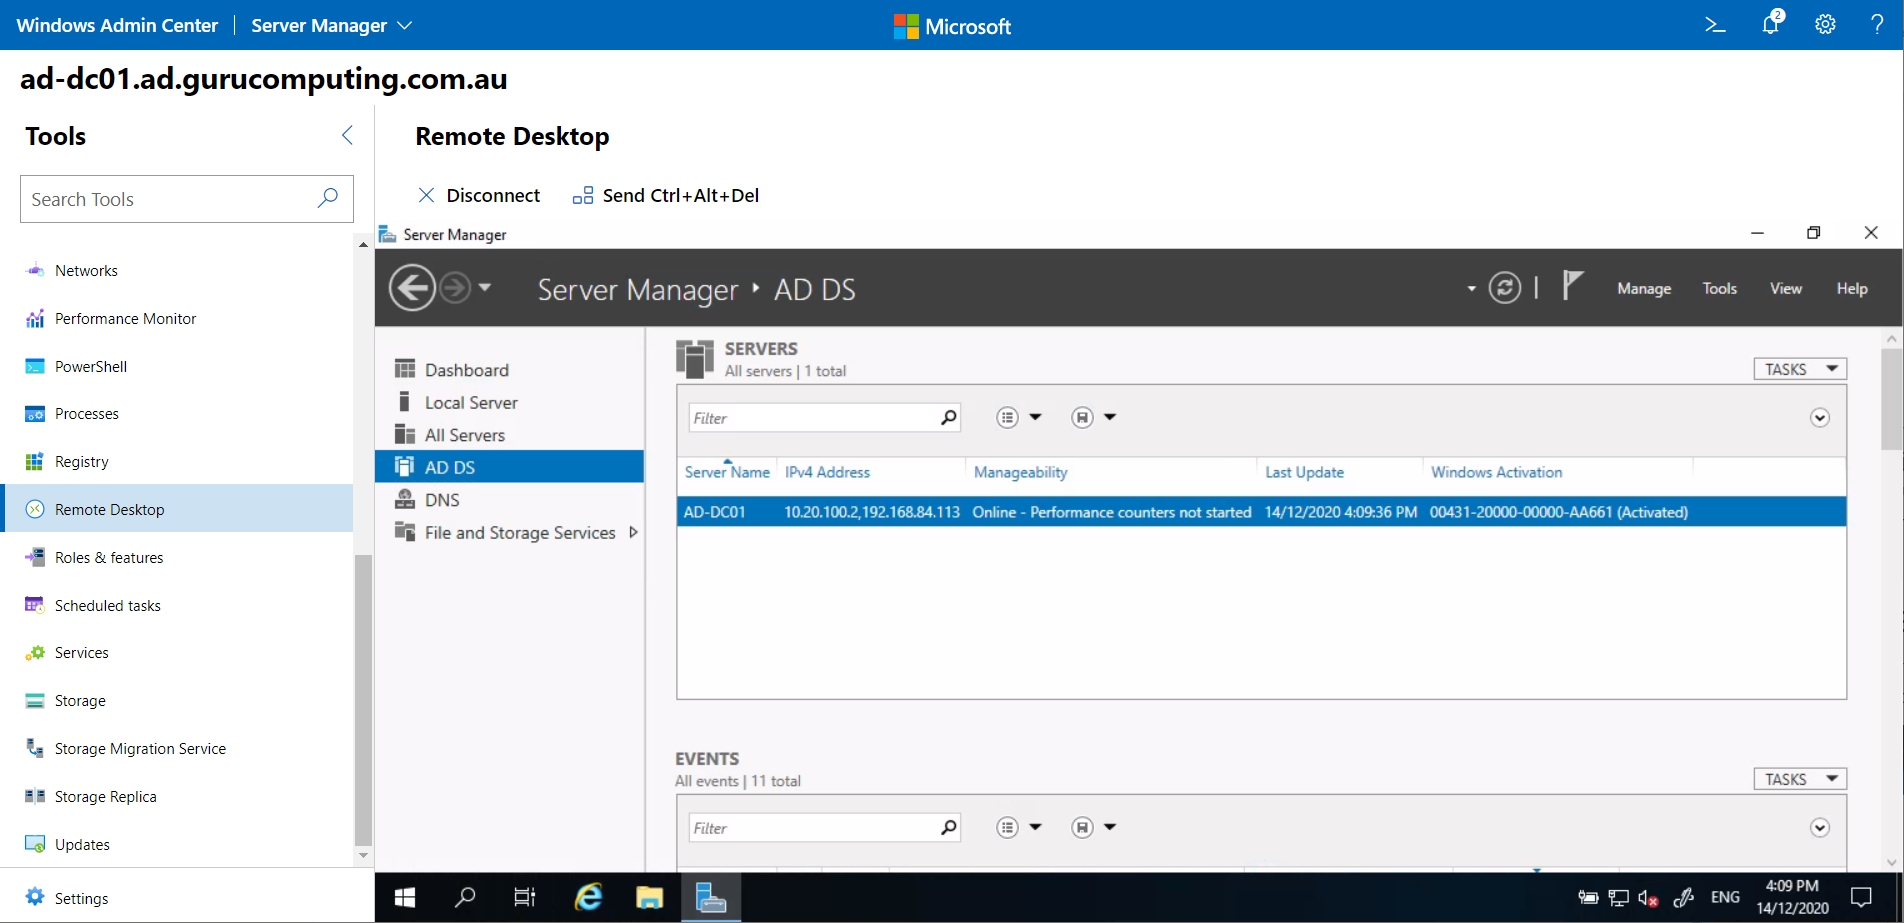 Remotely managing the Domain Controller, even though the PC using the browser has no direct connection.